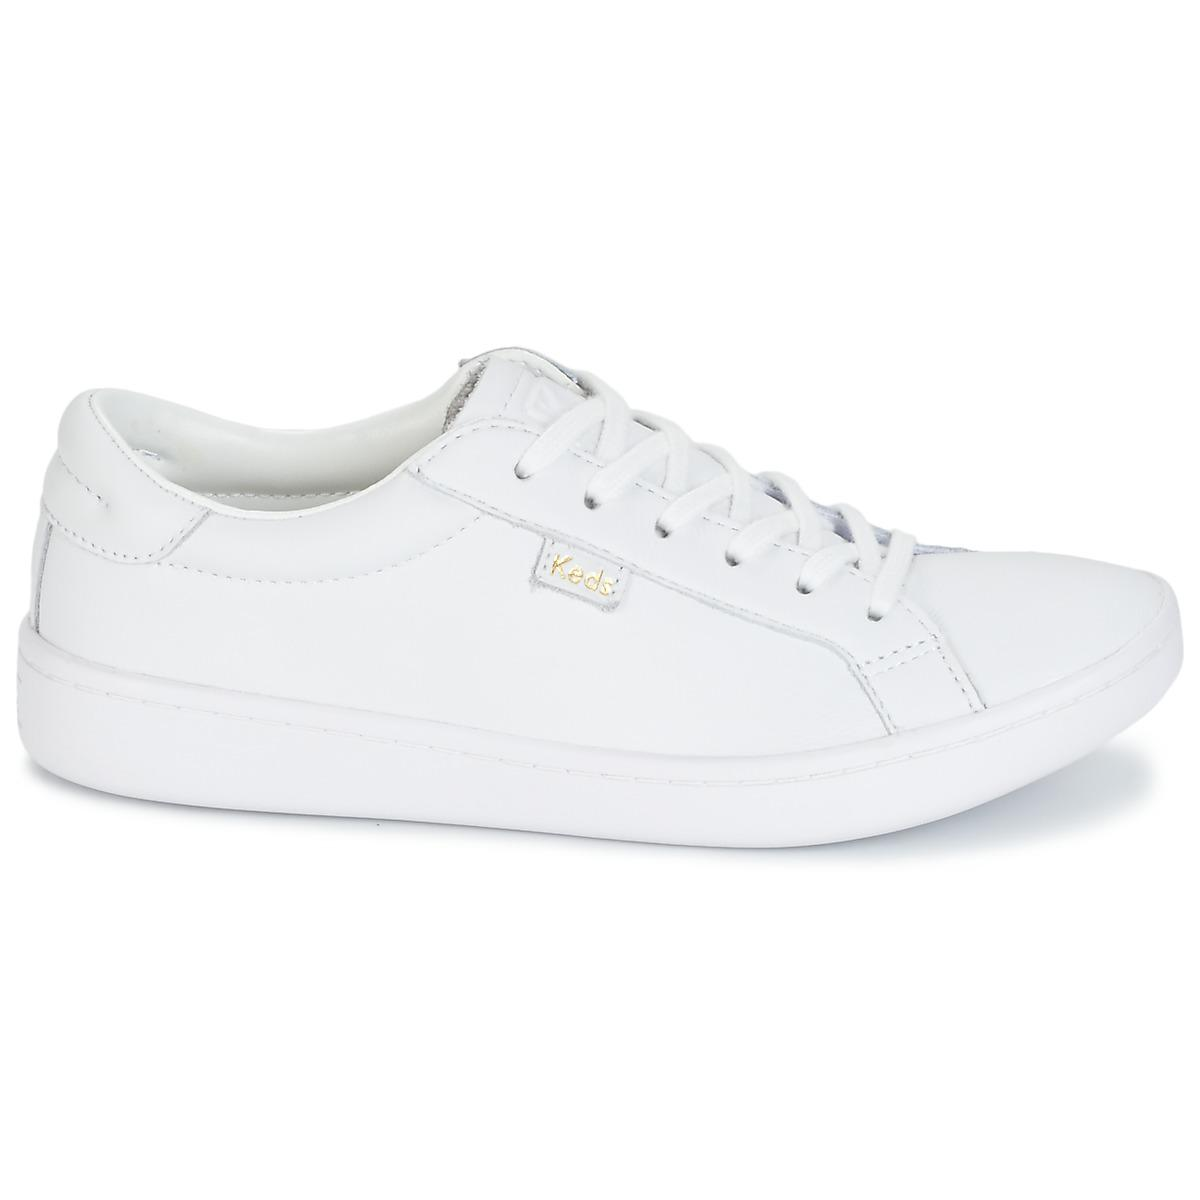 Keds ACE CORE LEATHER women's Shoes (Trainers) in Particular Limited Edition Online Free Shipping Low Shipping Fee Discount Extremely pyGP9Zk